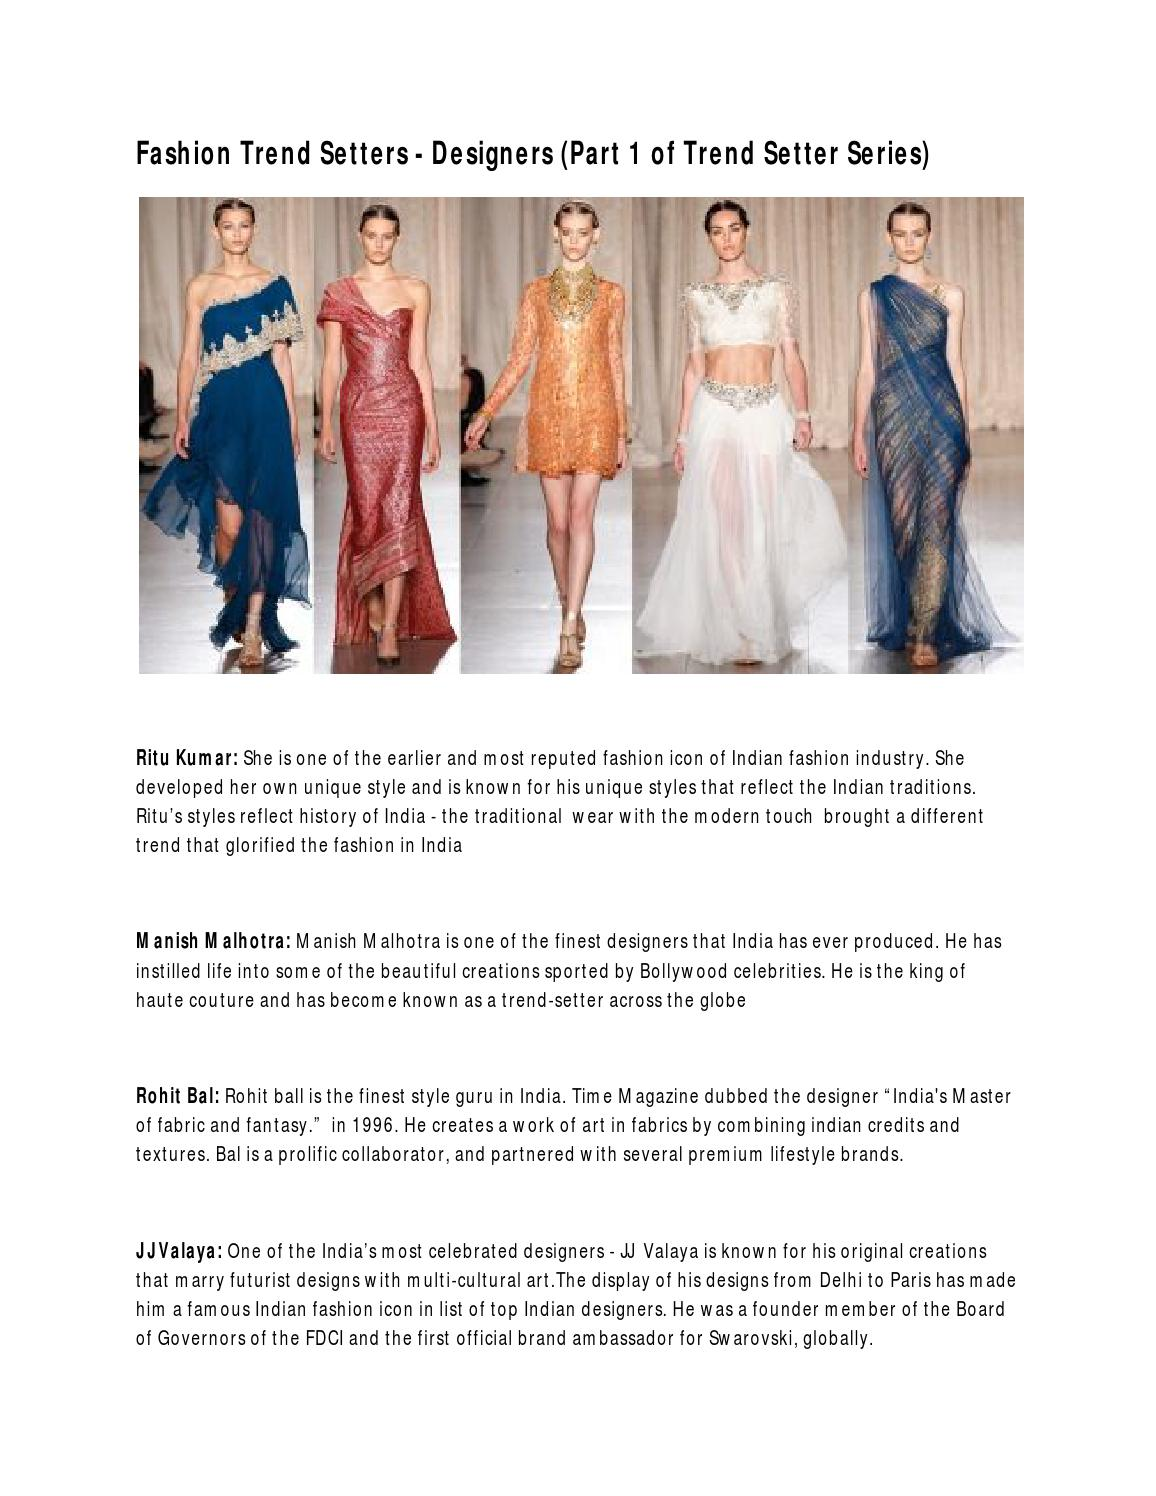 Fashion Trend Setters Designers Part 1 Of Trend Setter Series By Zaffys Issuu